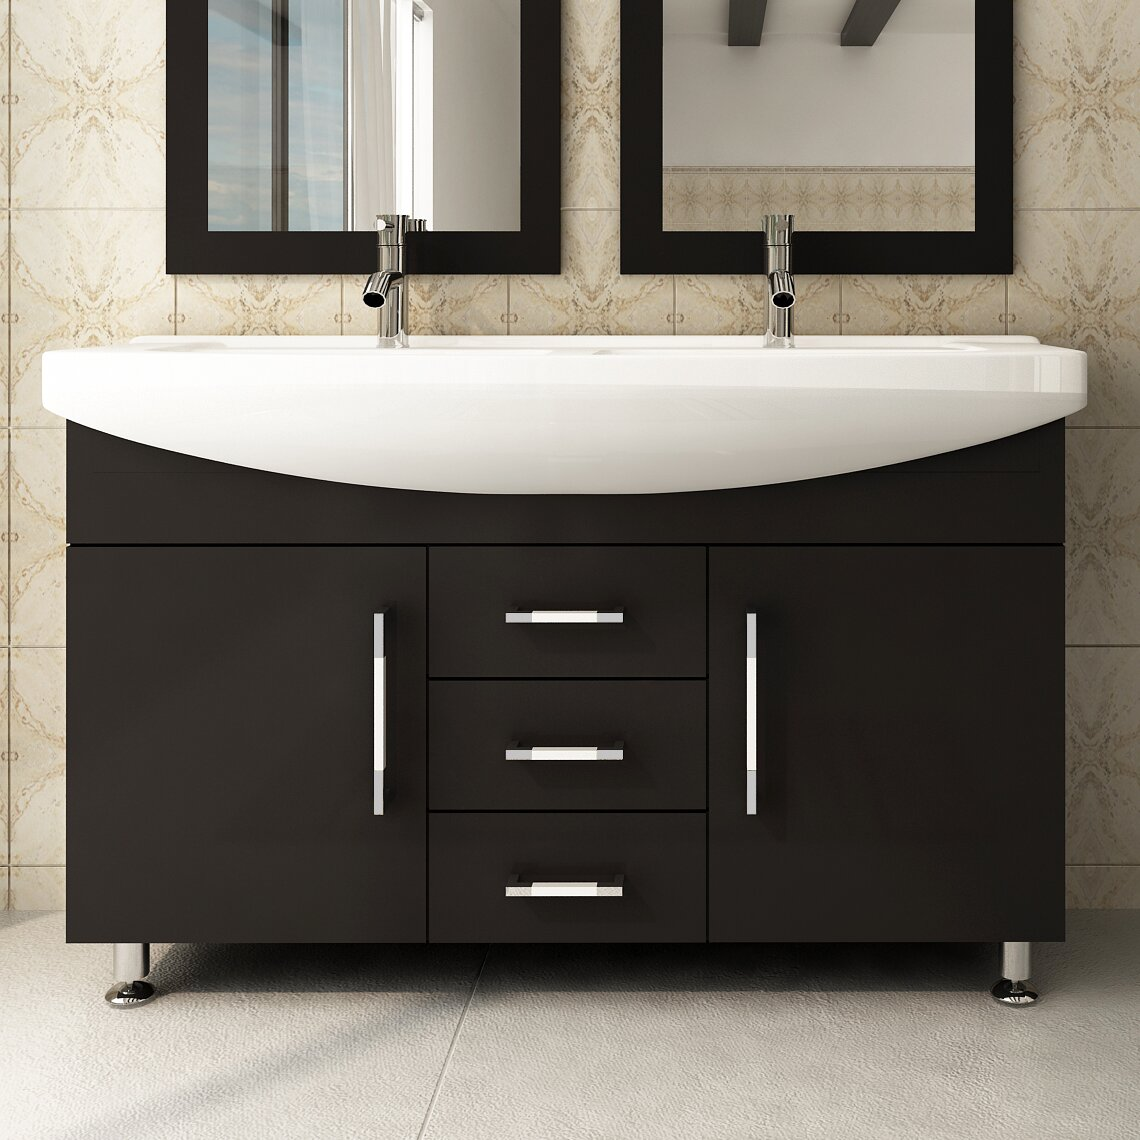 Twin Bathroom Sinks : Celine 48